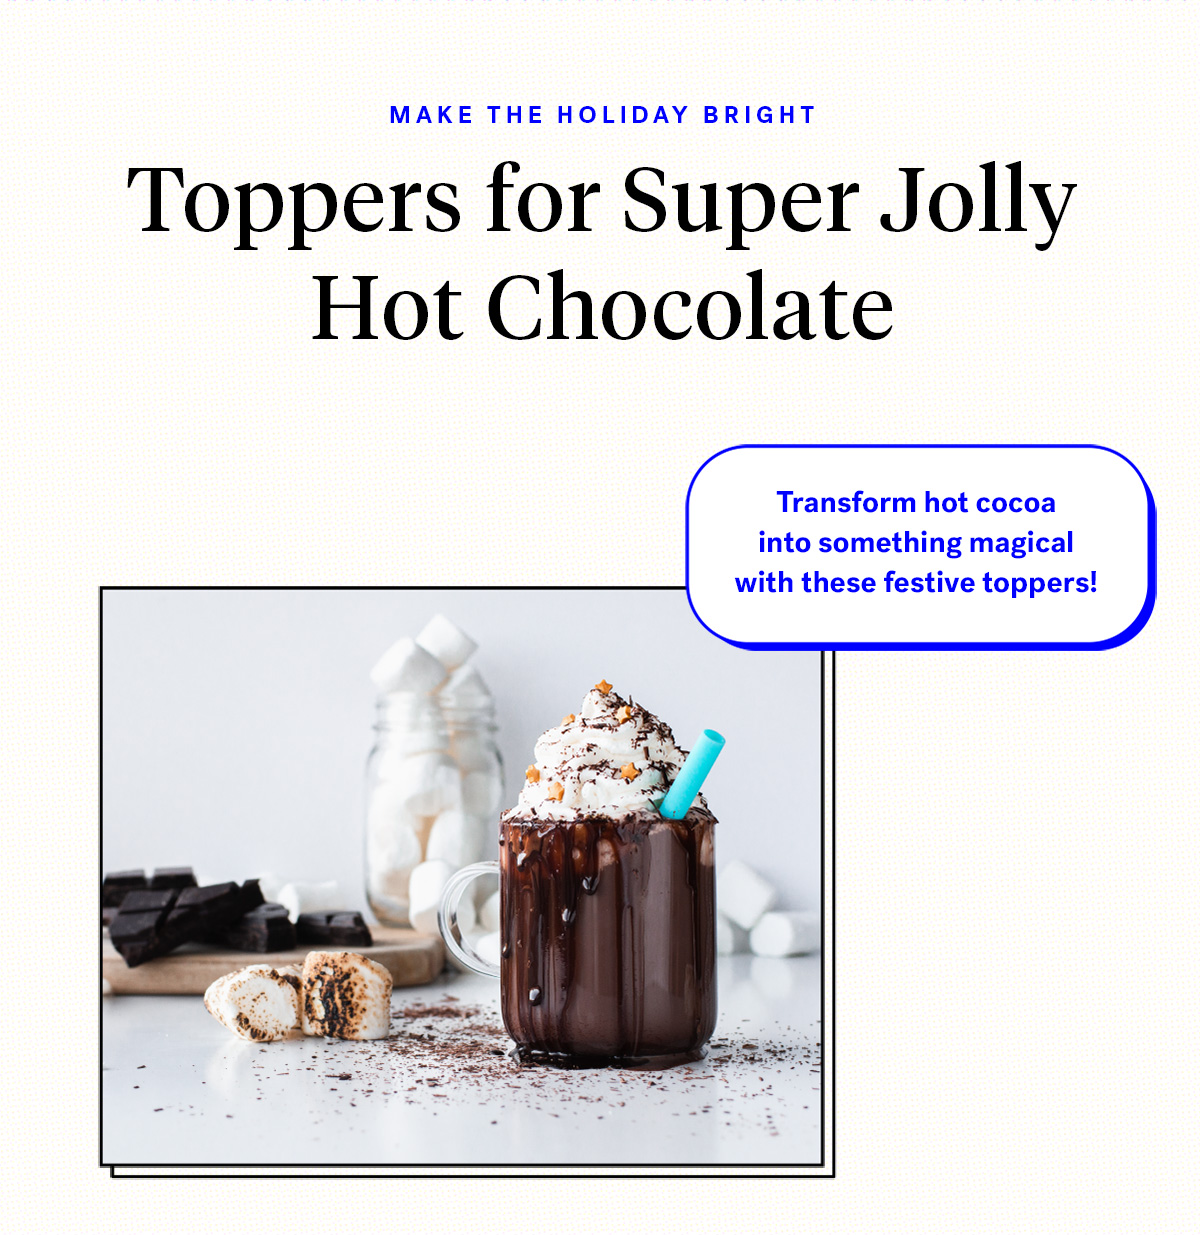 Make the holiday bright